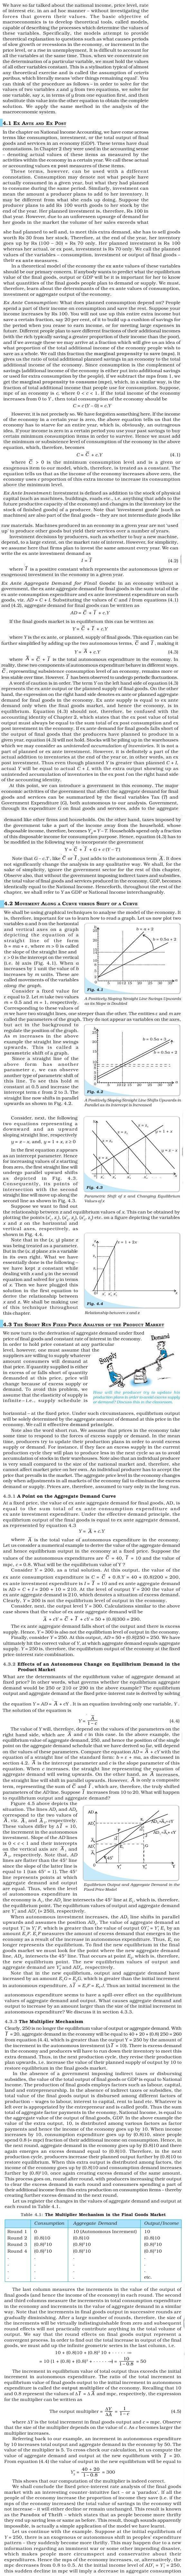 NCERT Class XII Economics Macroeconomics - Income Determination